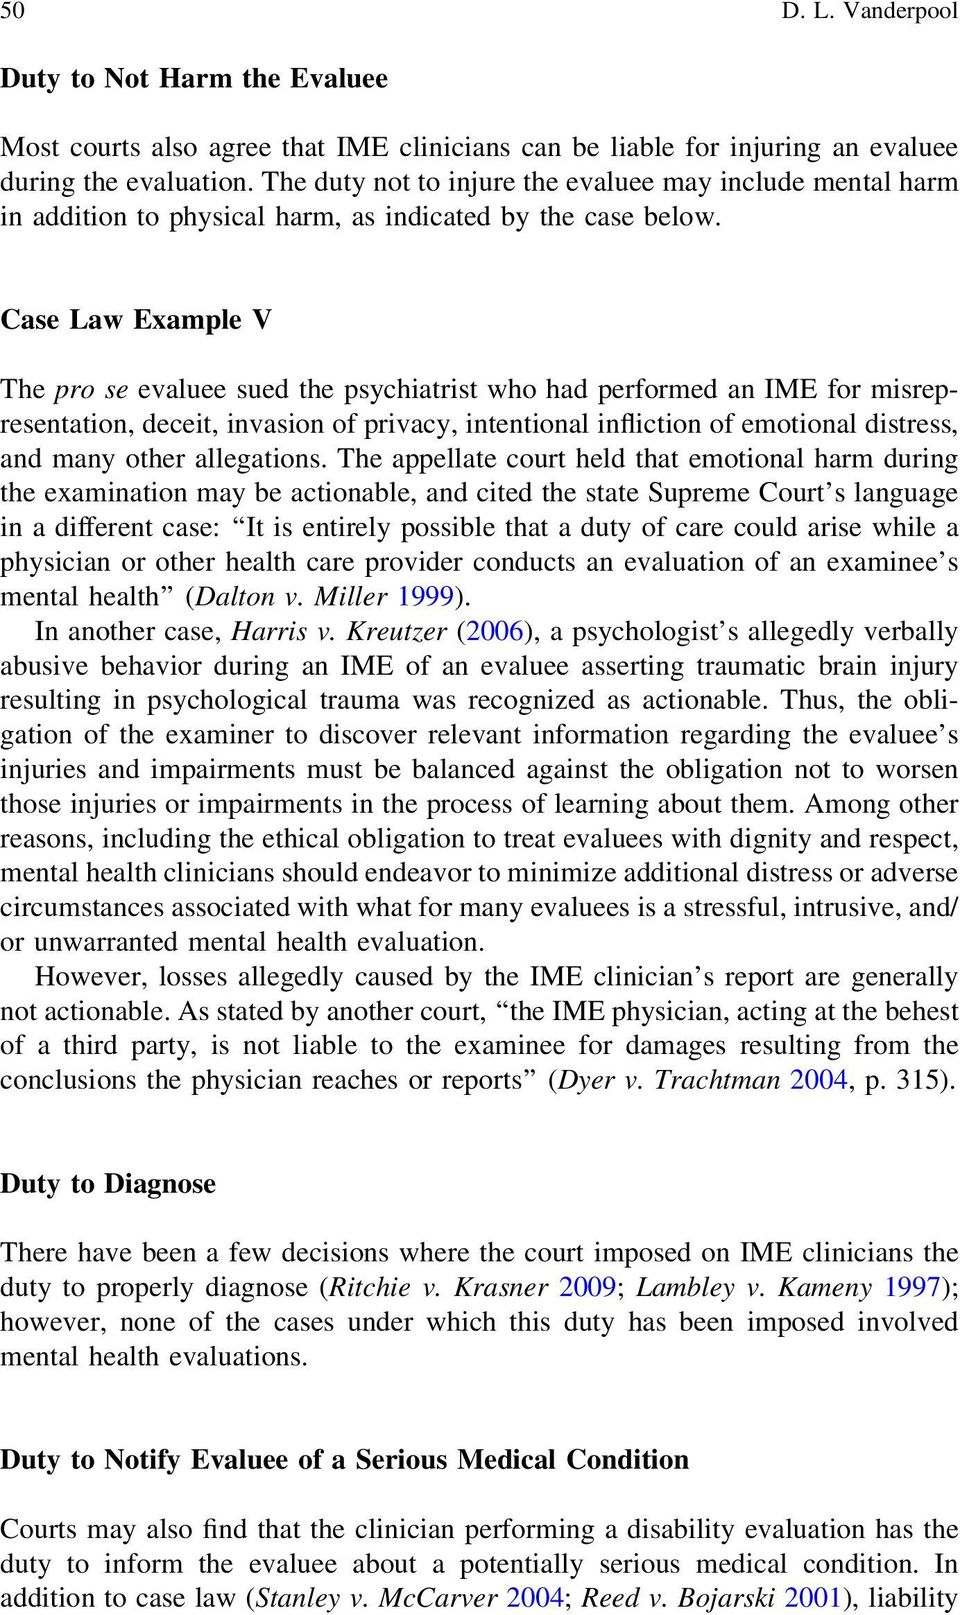 Case Law Example V The pro se evaluee sued the psychiatrist who had performed an IME for misrepresentation, deceit, invasion of privacy, intentional infliction of emotional distress, and many other